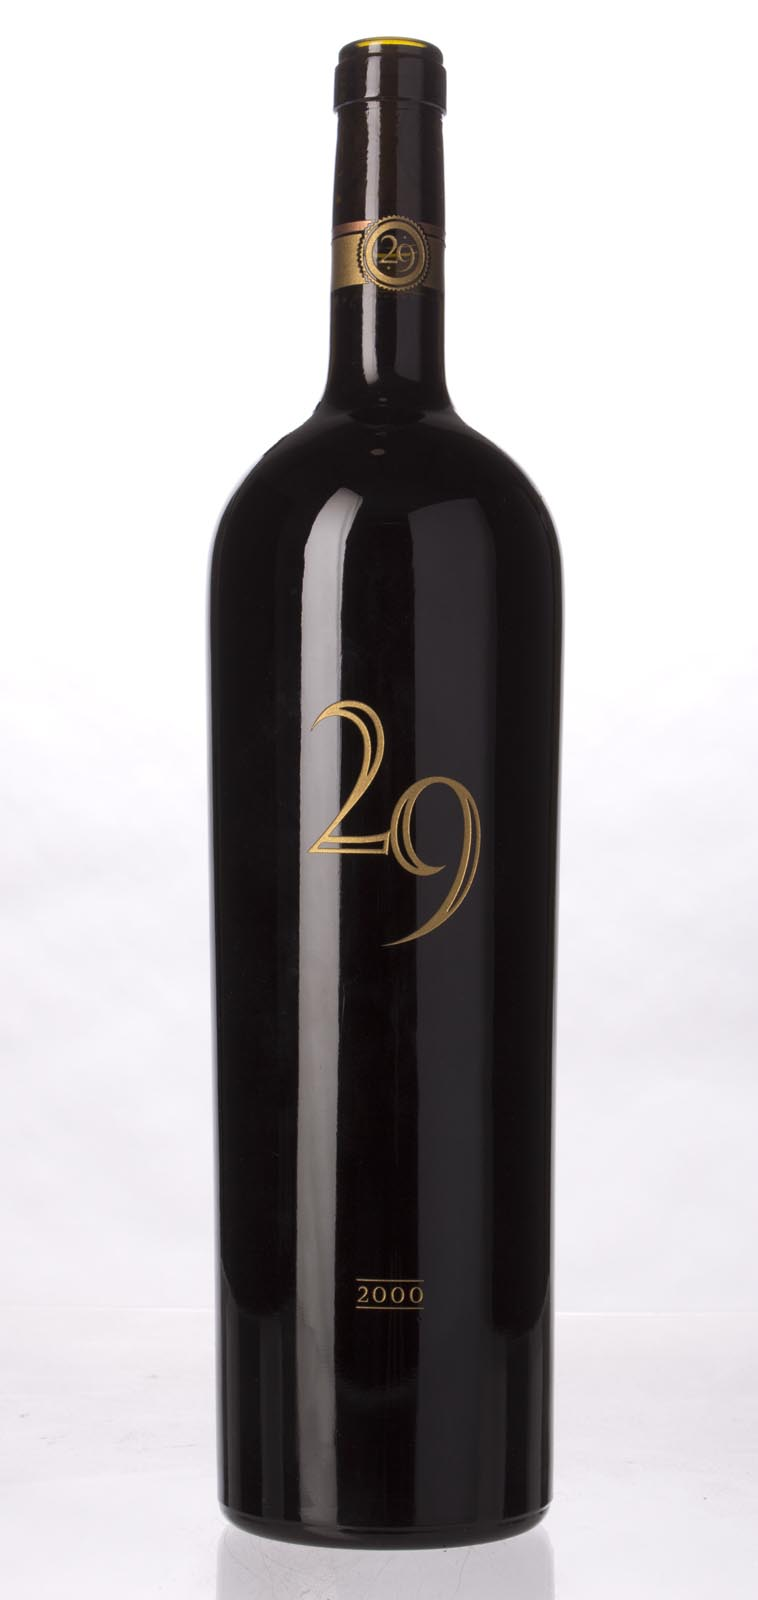 Vineyard 29 Cabernet Sauvignon Napa Valley 2000, 1.5L () from The BPW - Merchants of rare and fine wines.